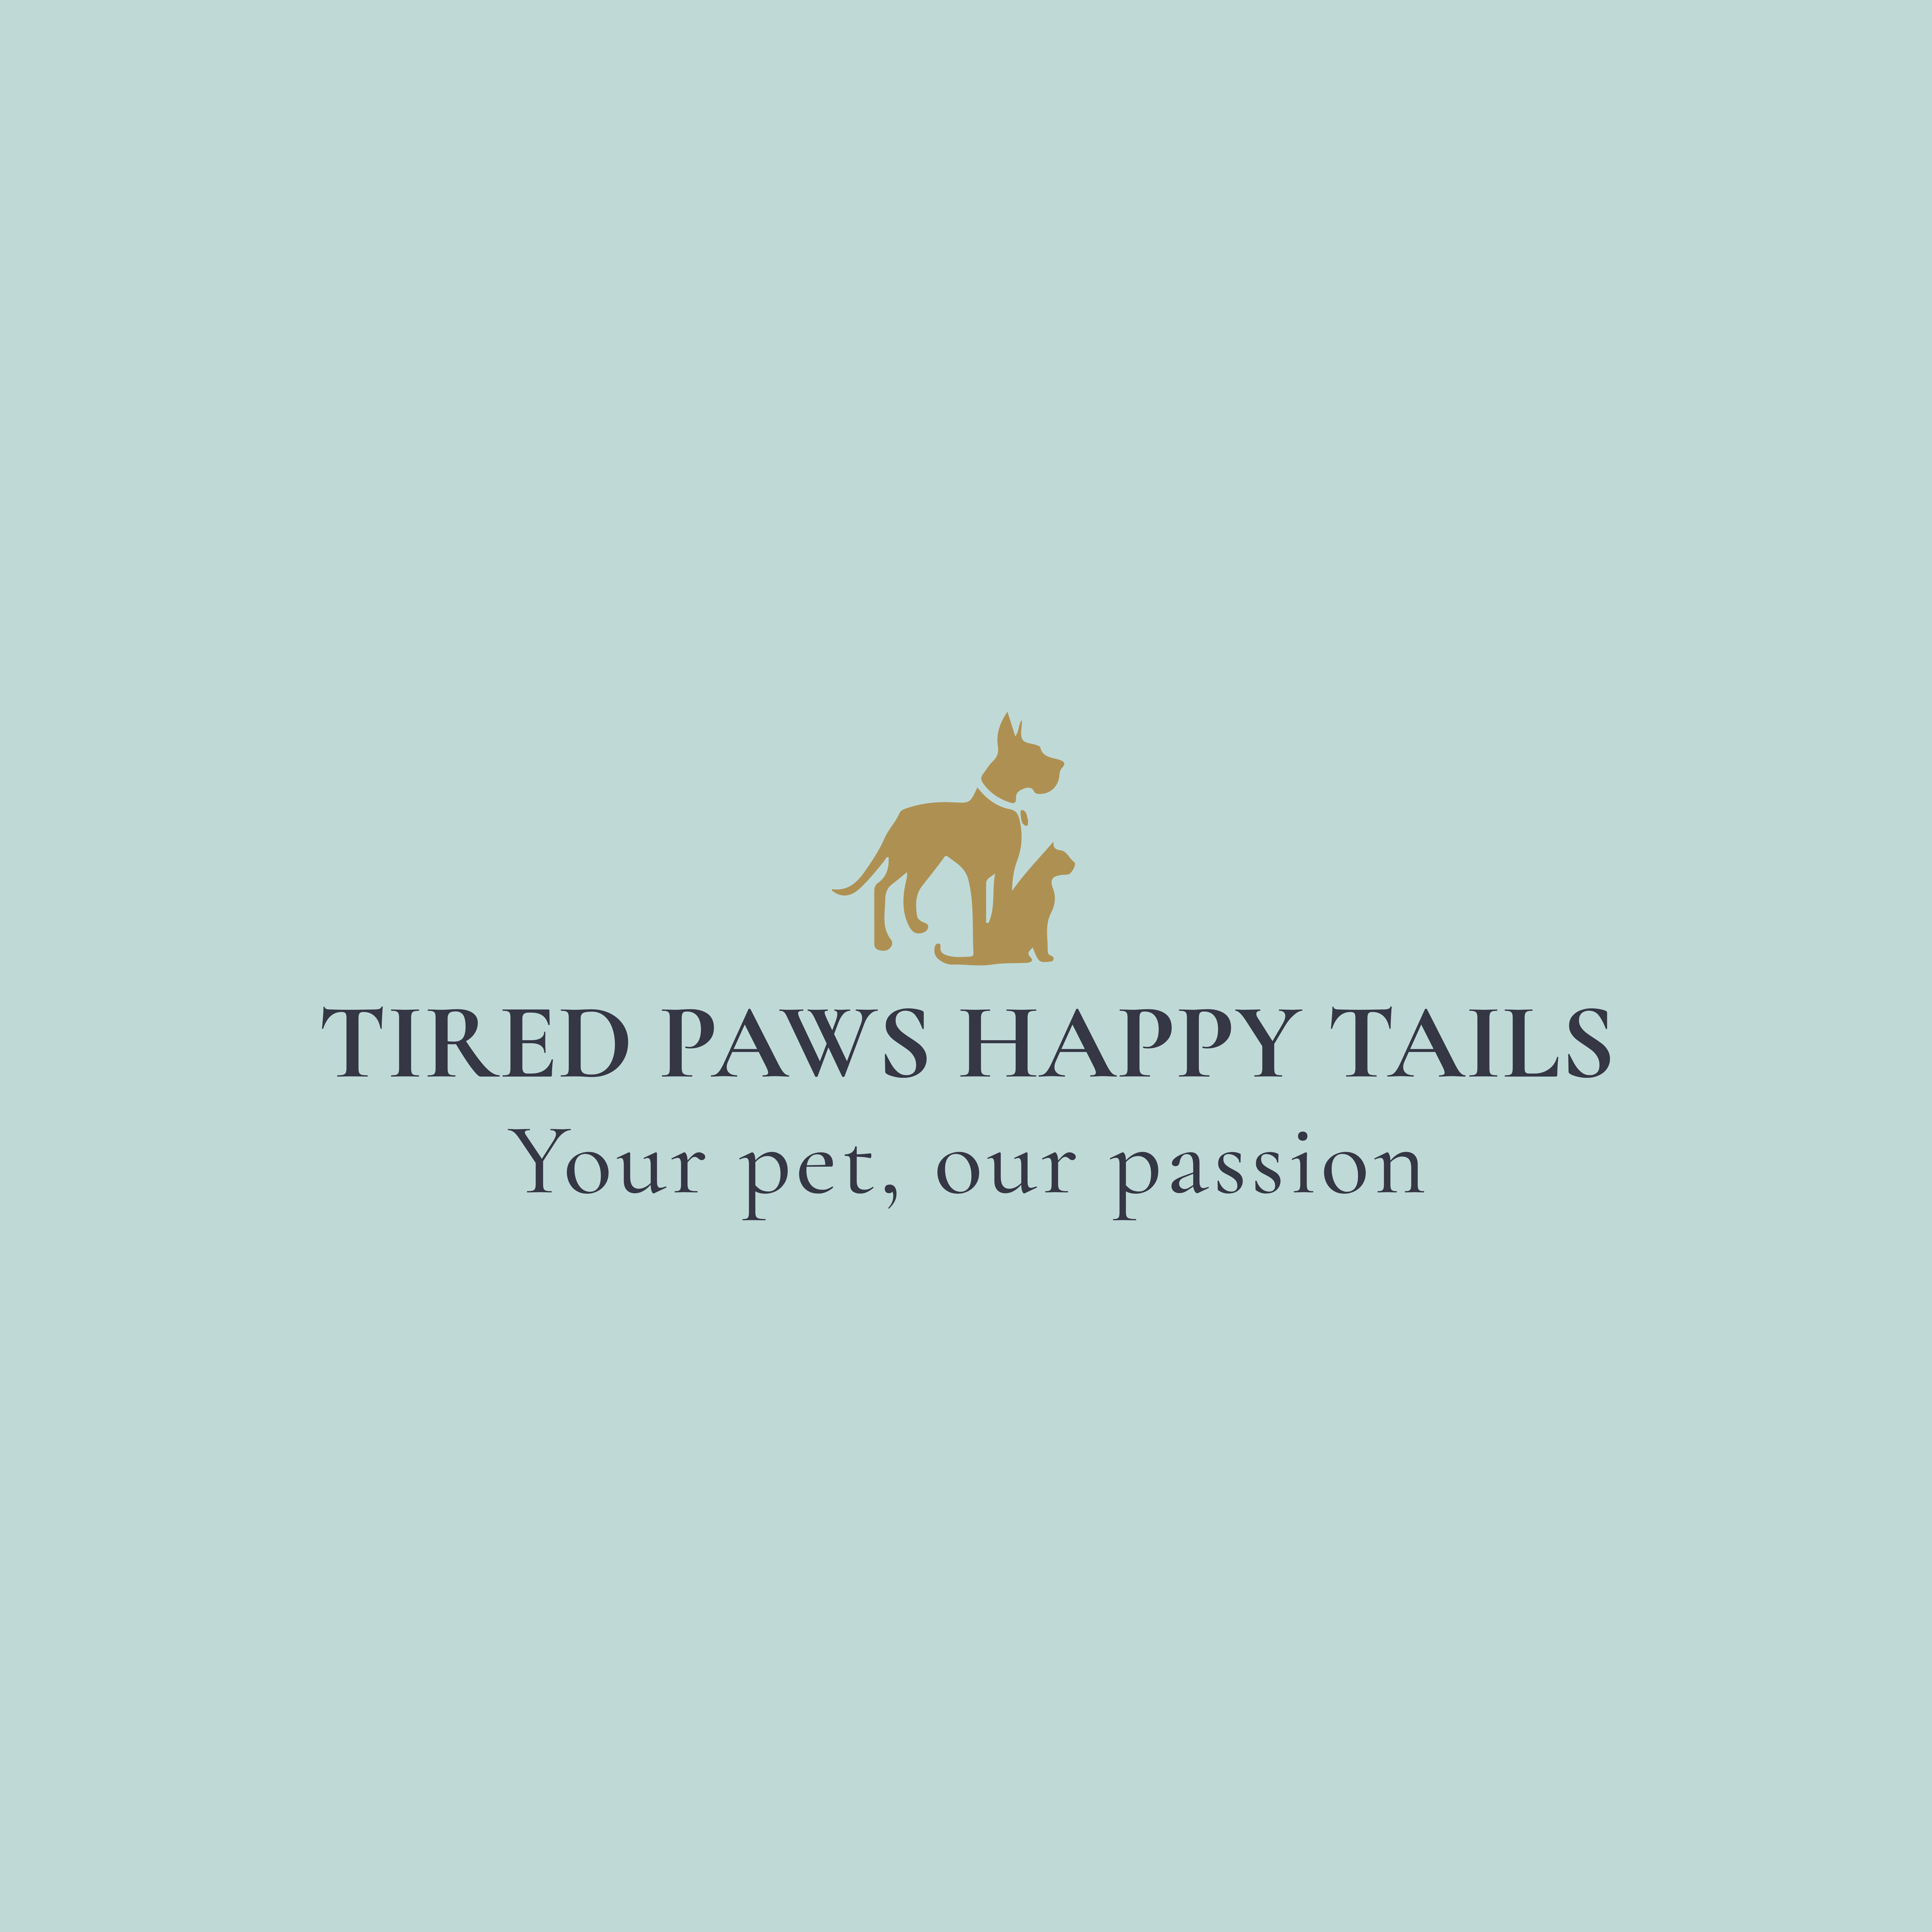 Tired Paws Happy Tails - the New Online Store Disrupting the UK Pet Care Industry